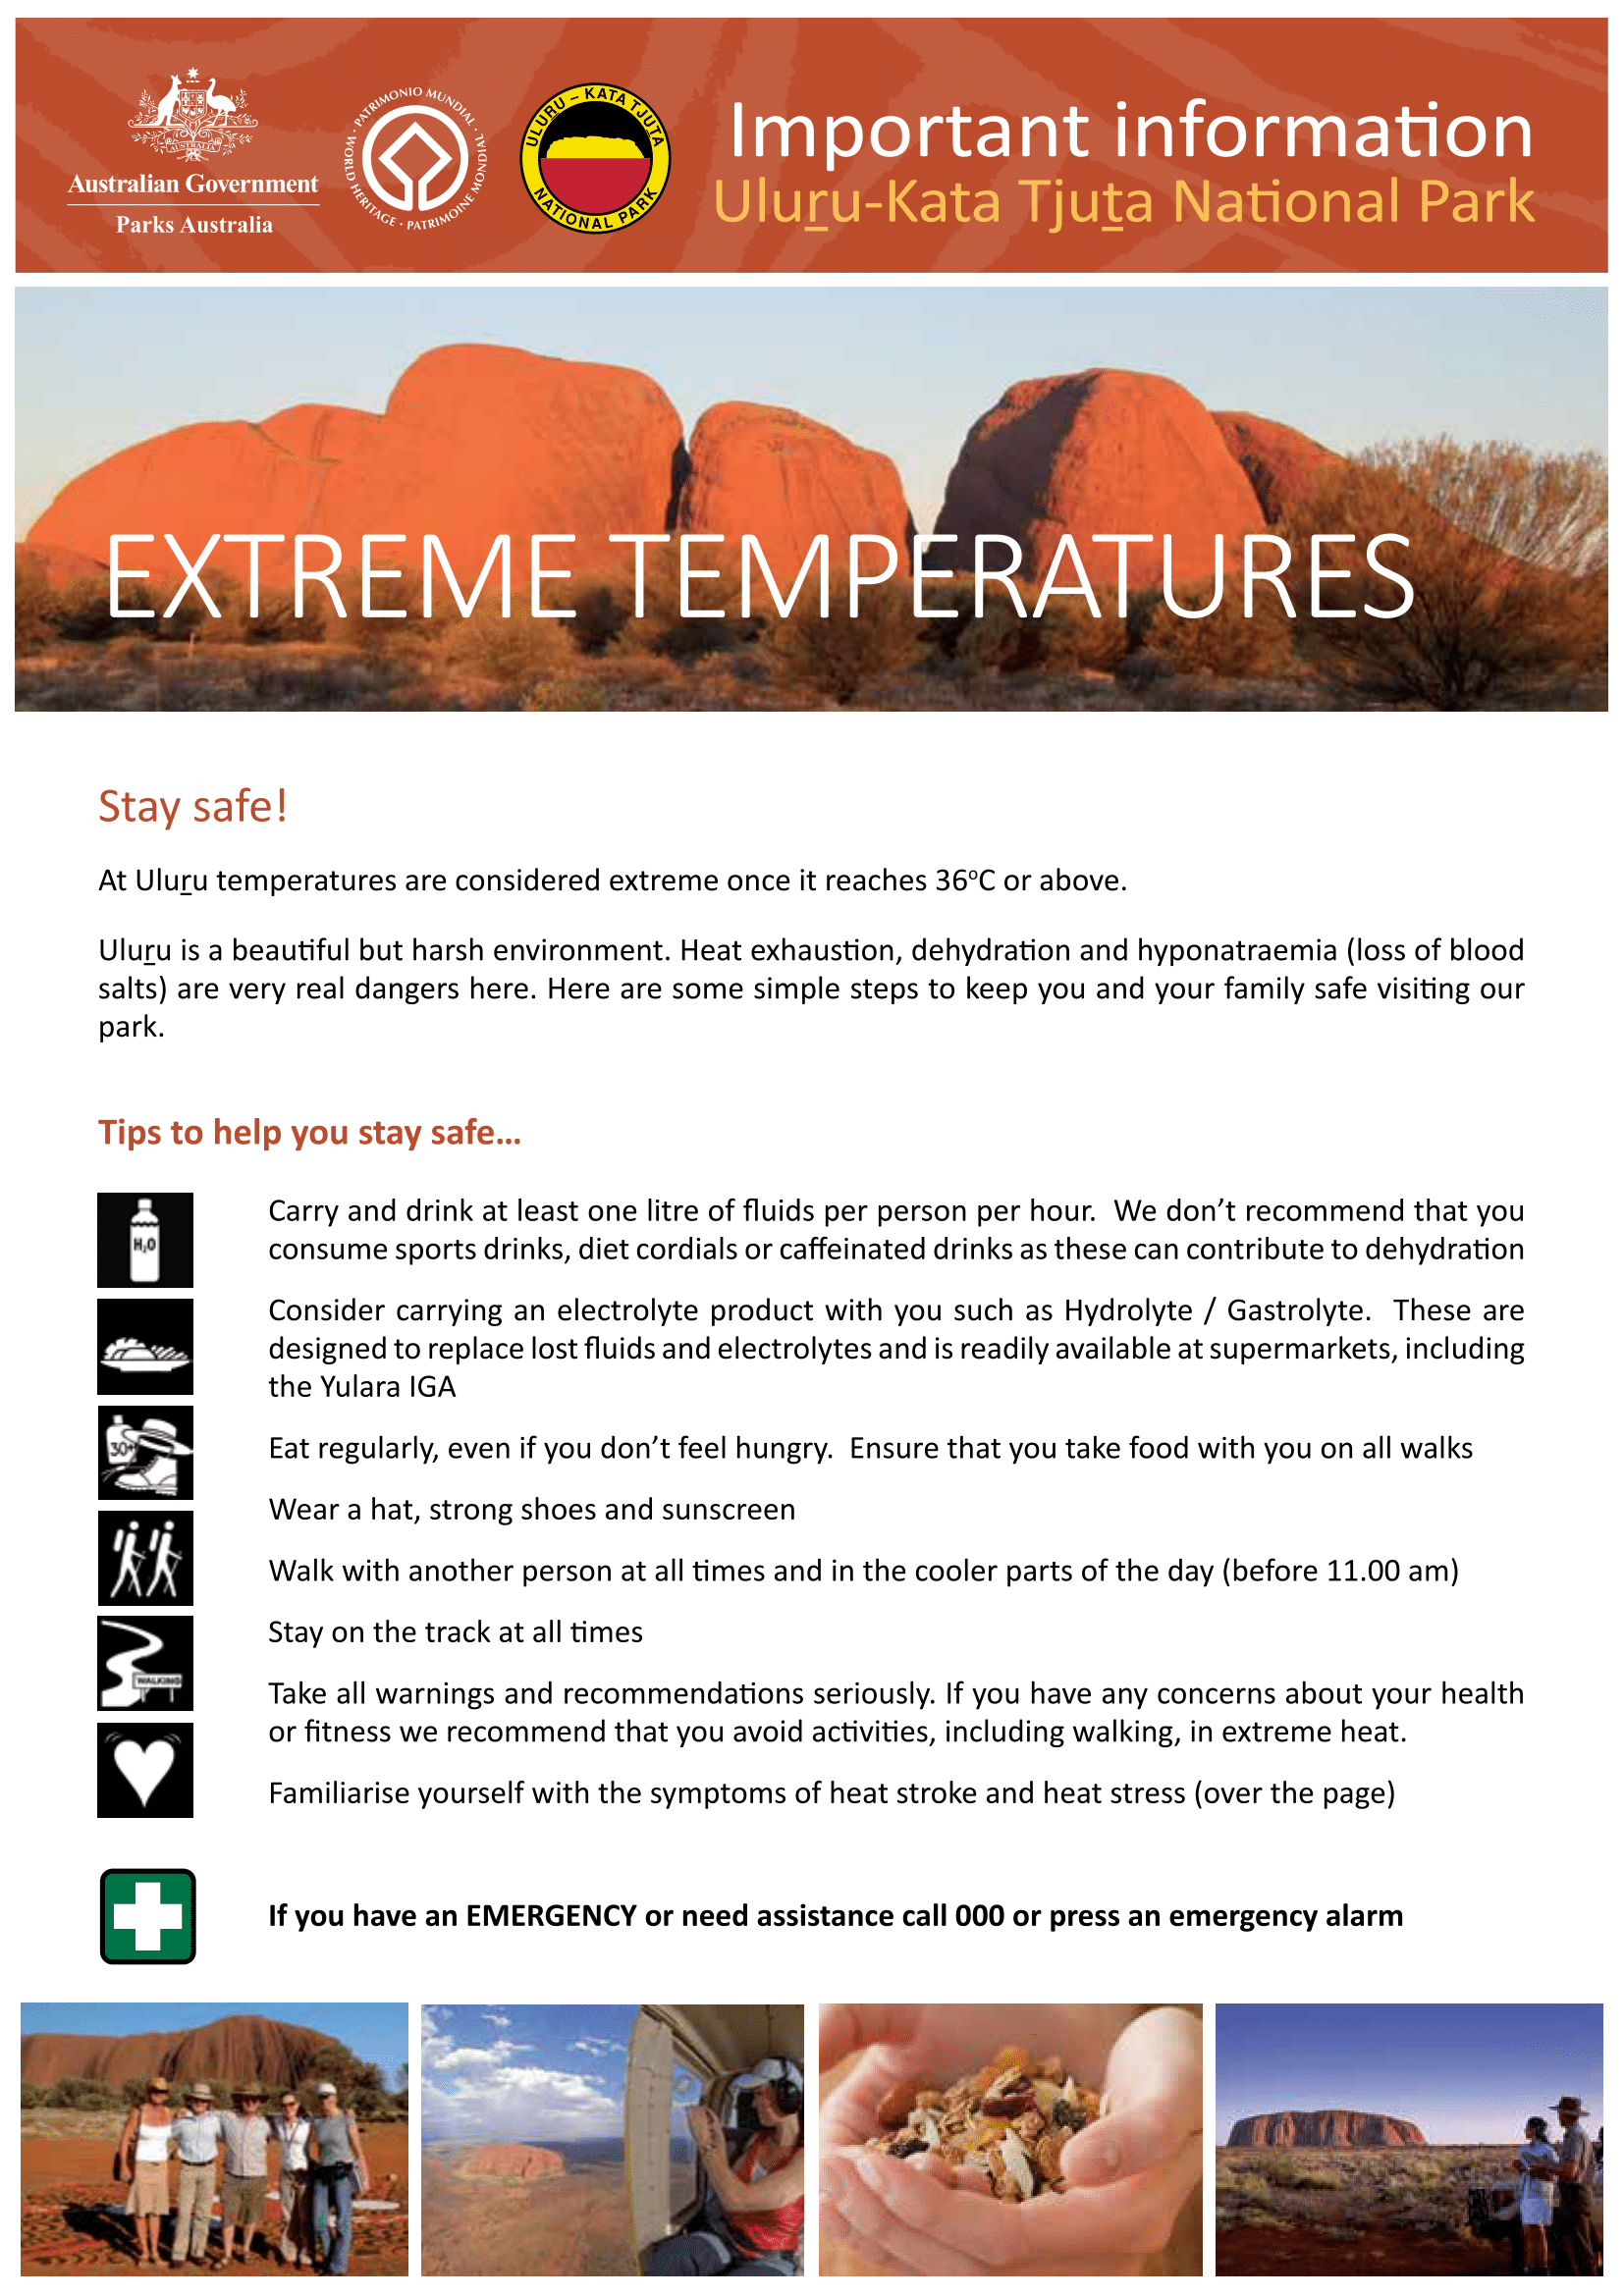 fs-extremetemperatures-1